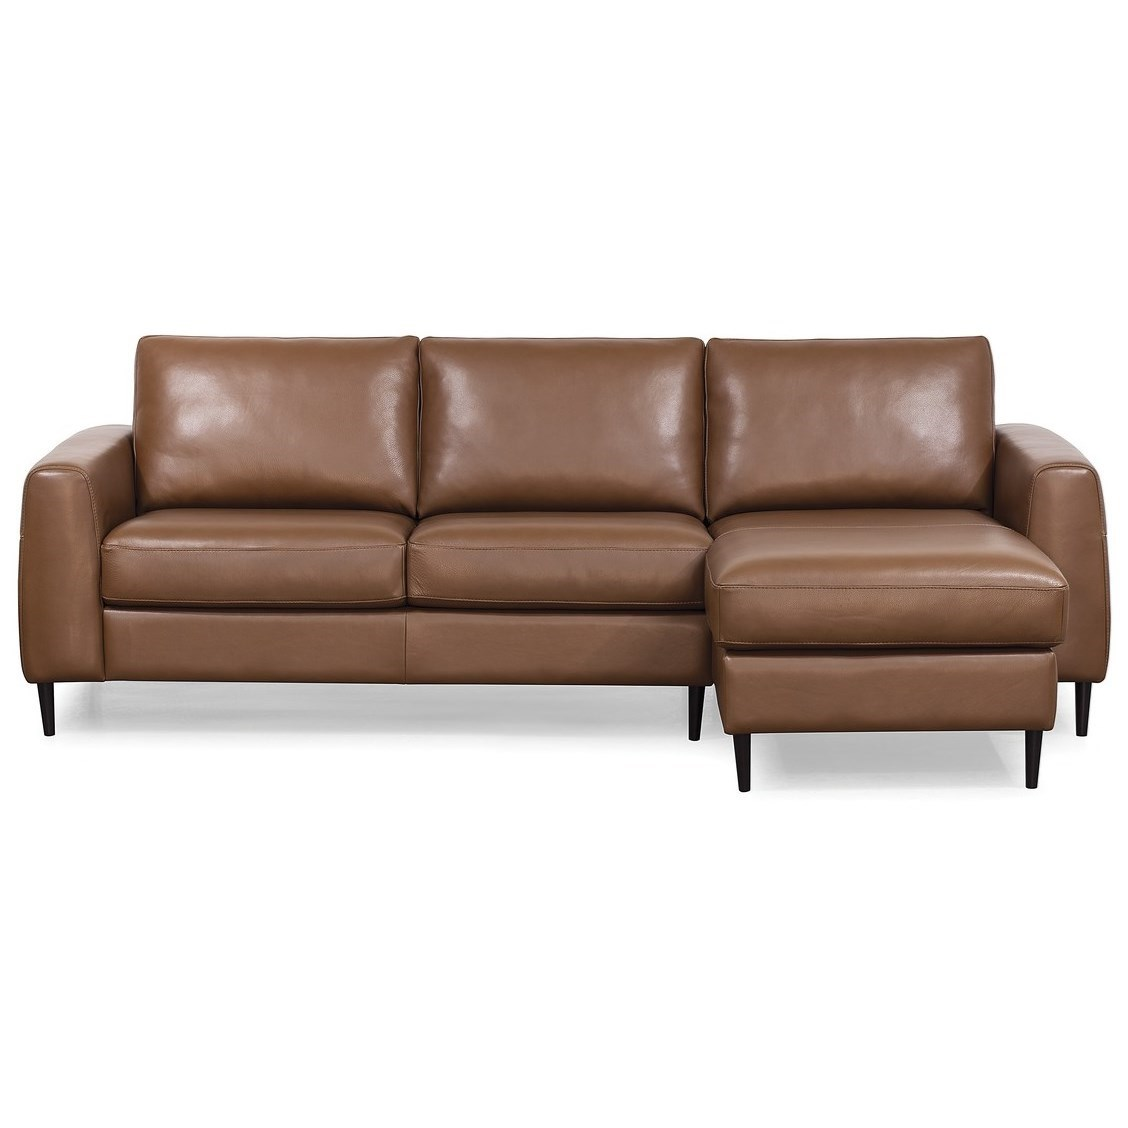 Atticus Sectional Sofa by Palliser at Upper Room Home Furnishings